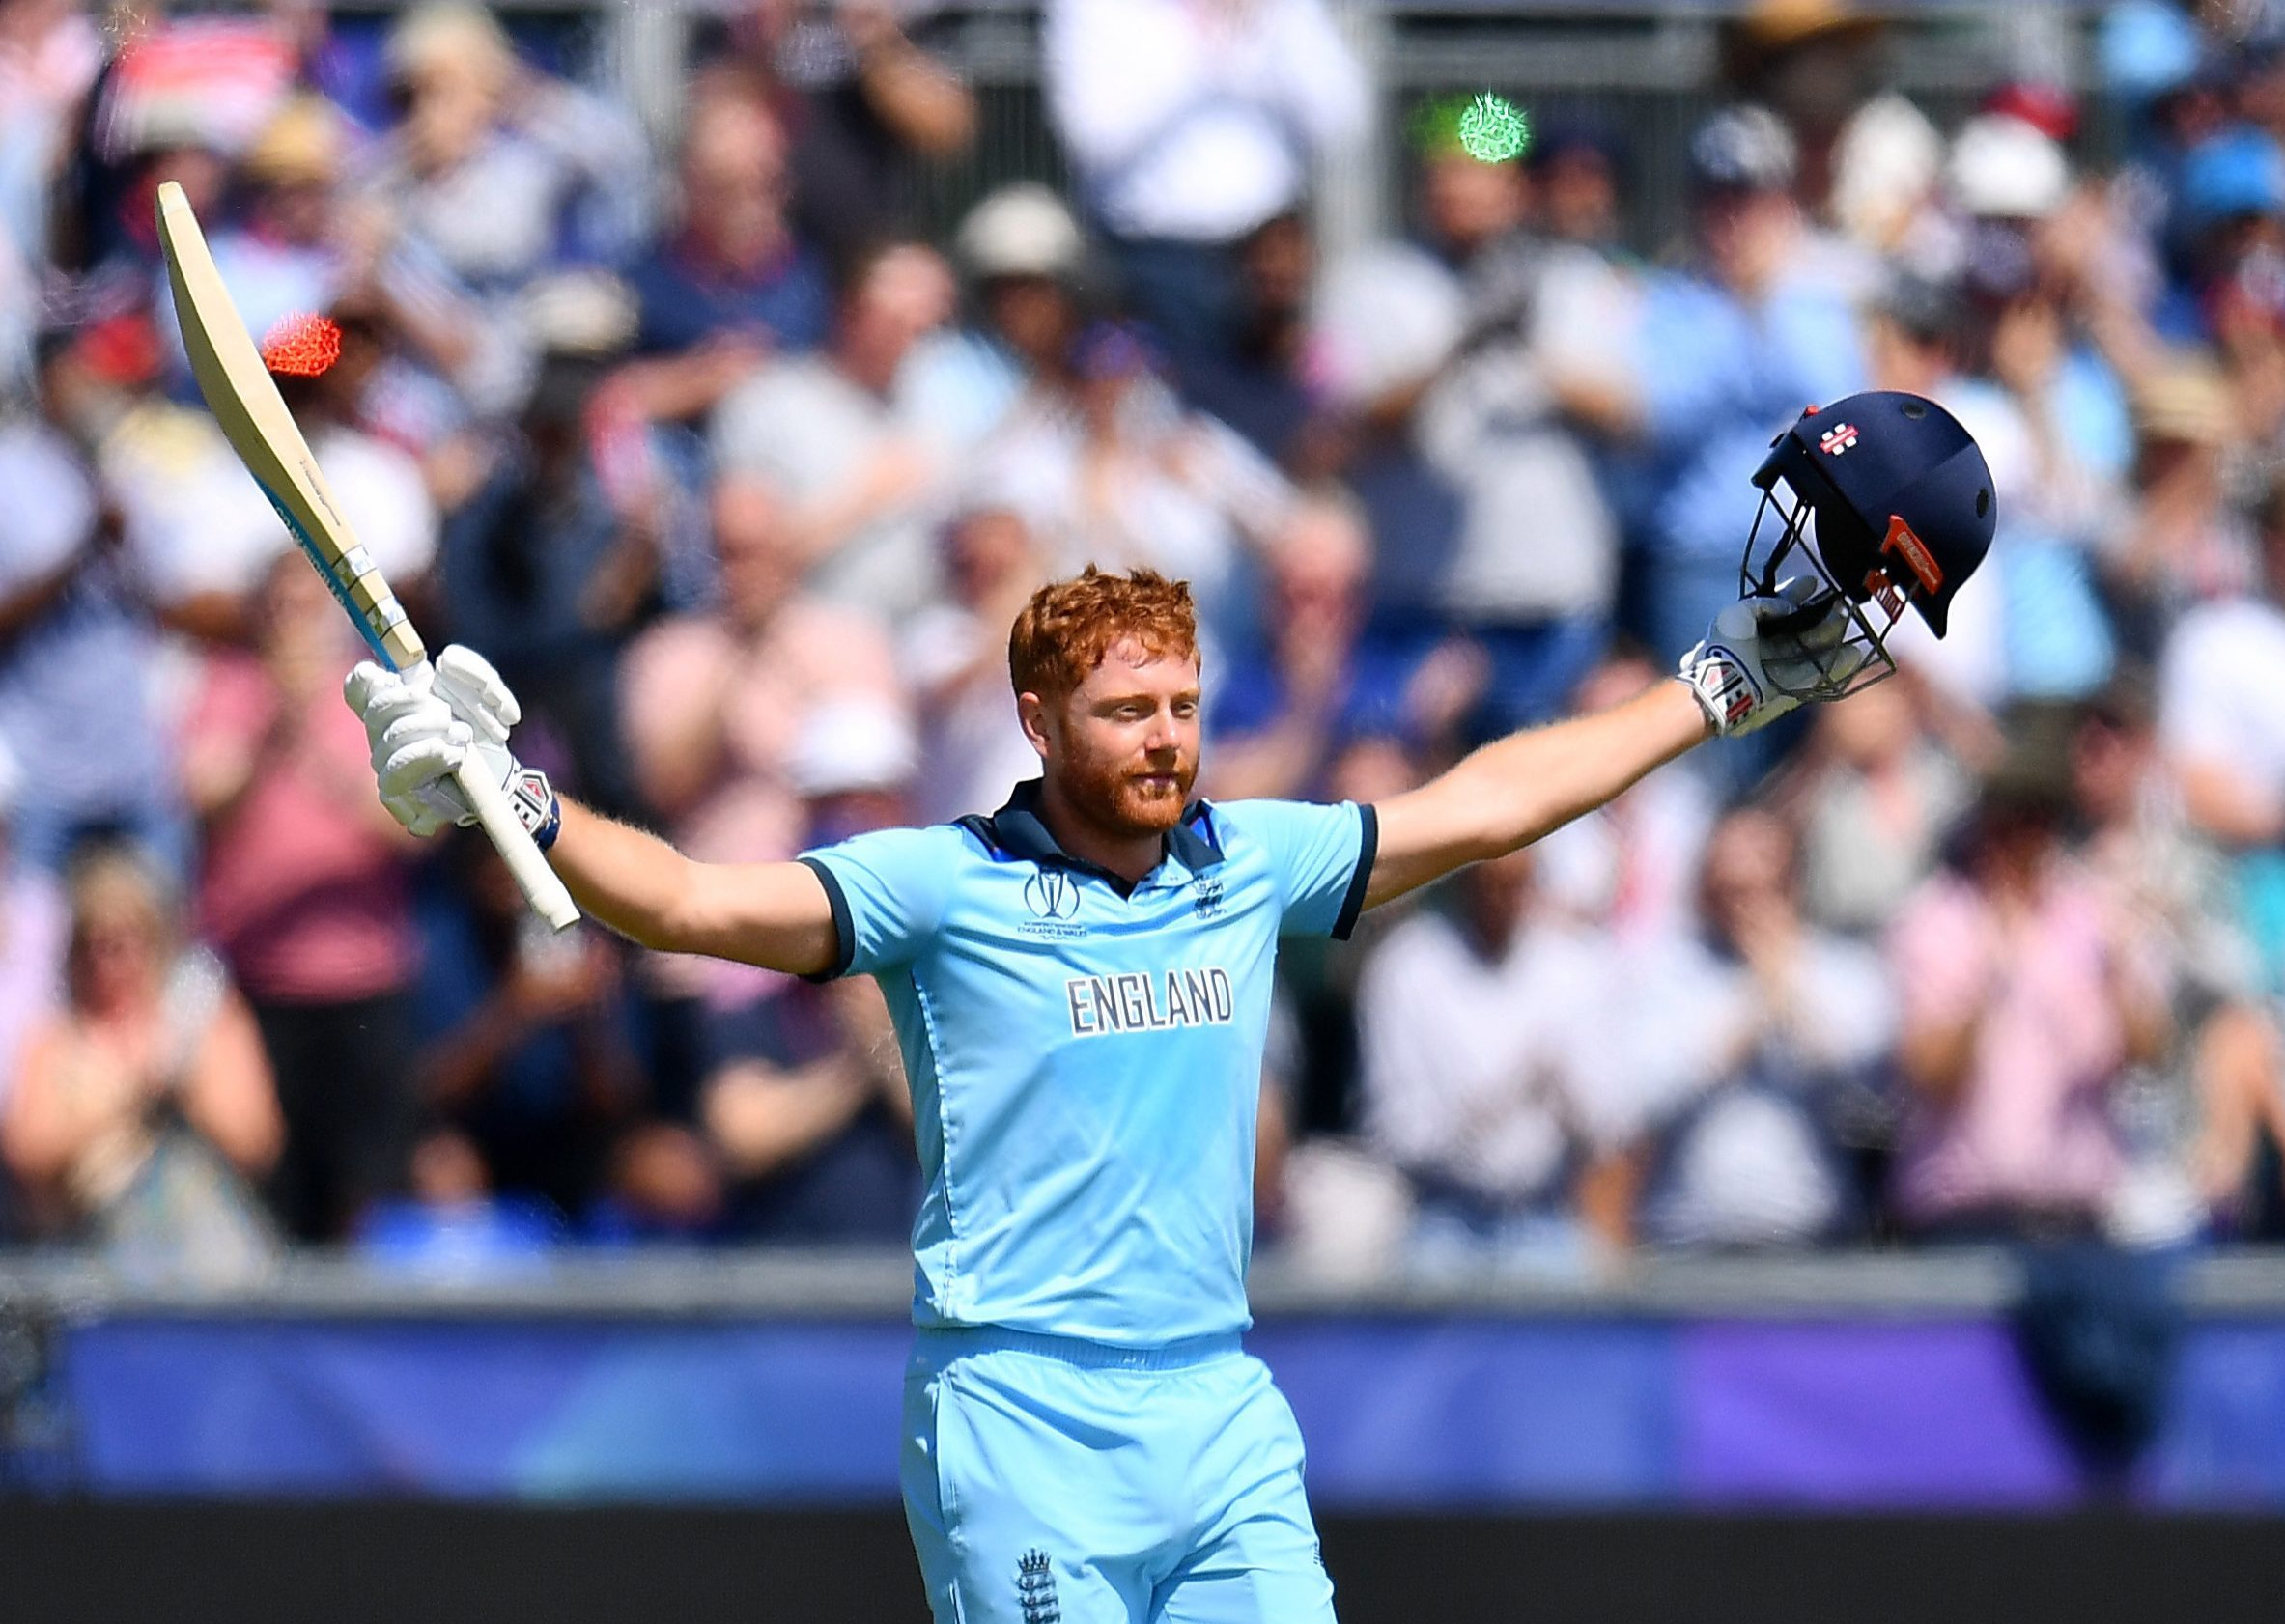 England take on Australia in the Cricket World Cup semi-final today